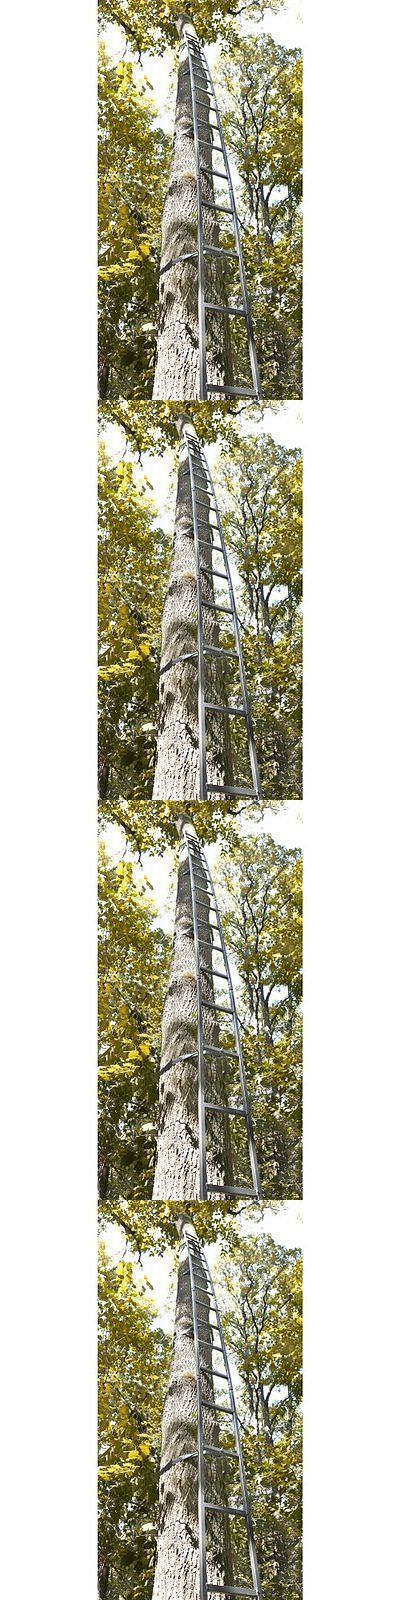 Tree Stands 52508: Deer Hunting Ladder Tree Stand 20Ft Sniper Rifle Bow Treestand Man Climbing New BUY IT NOW ONLY: $61.0